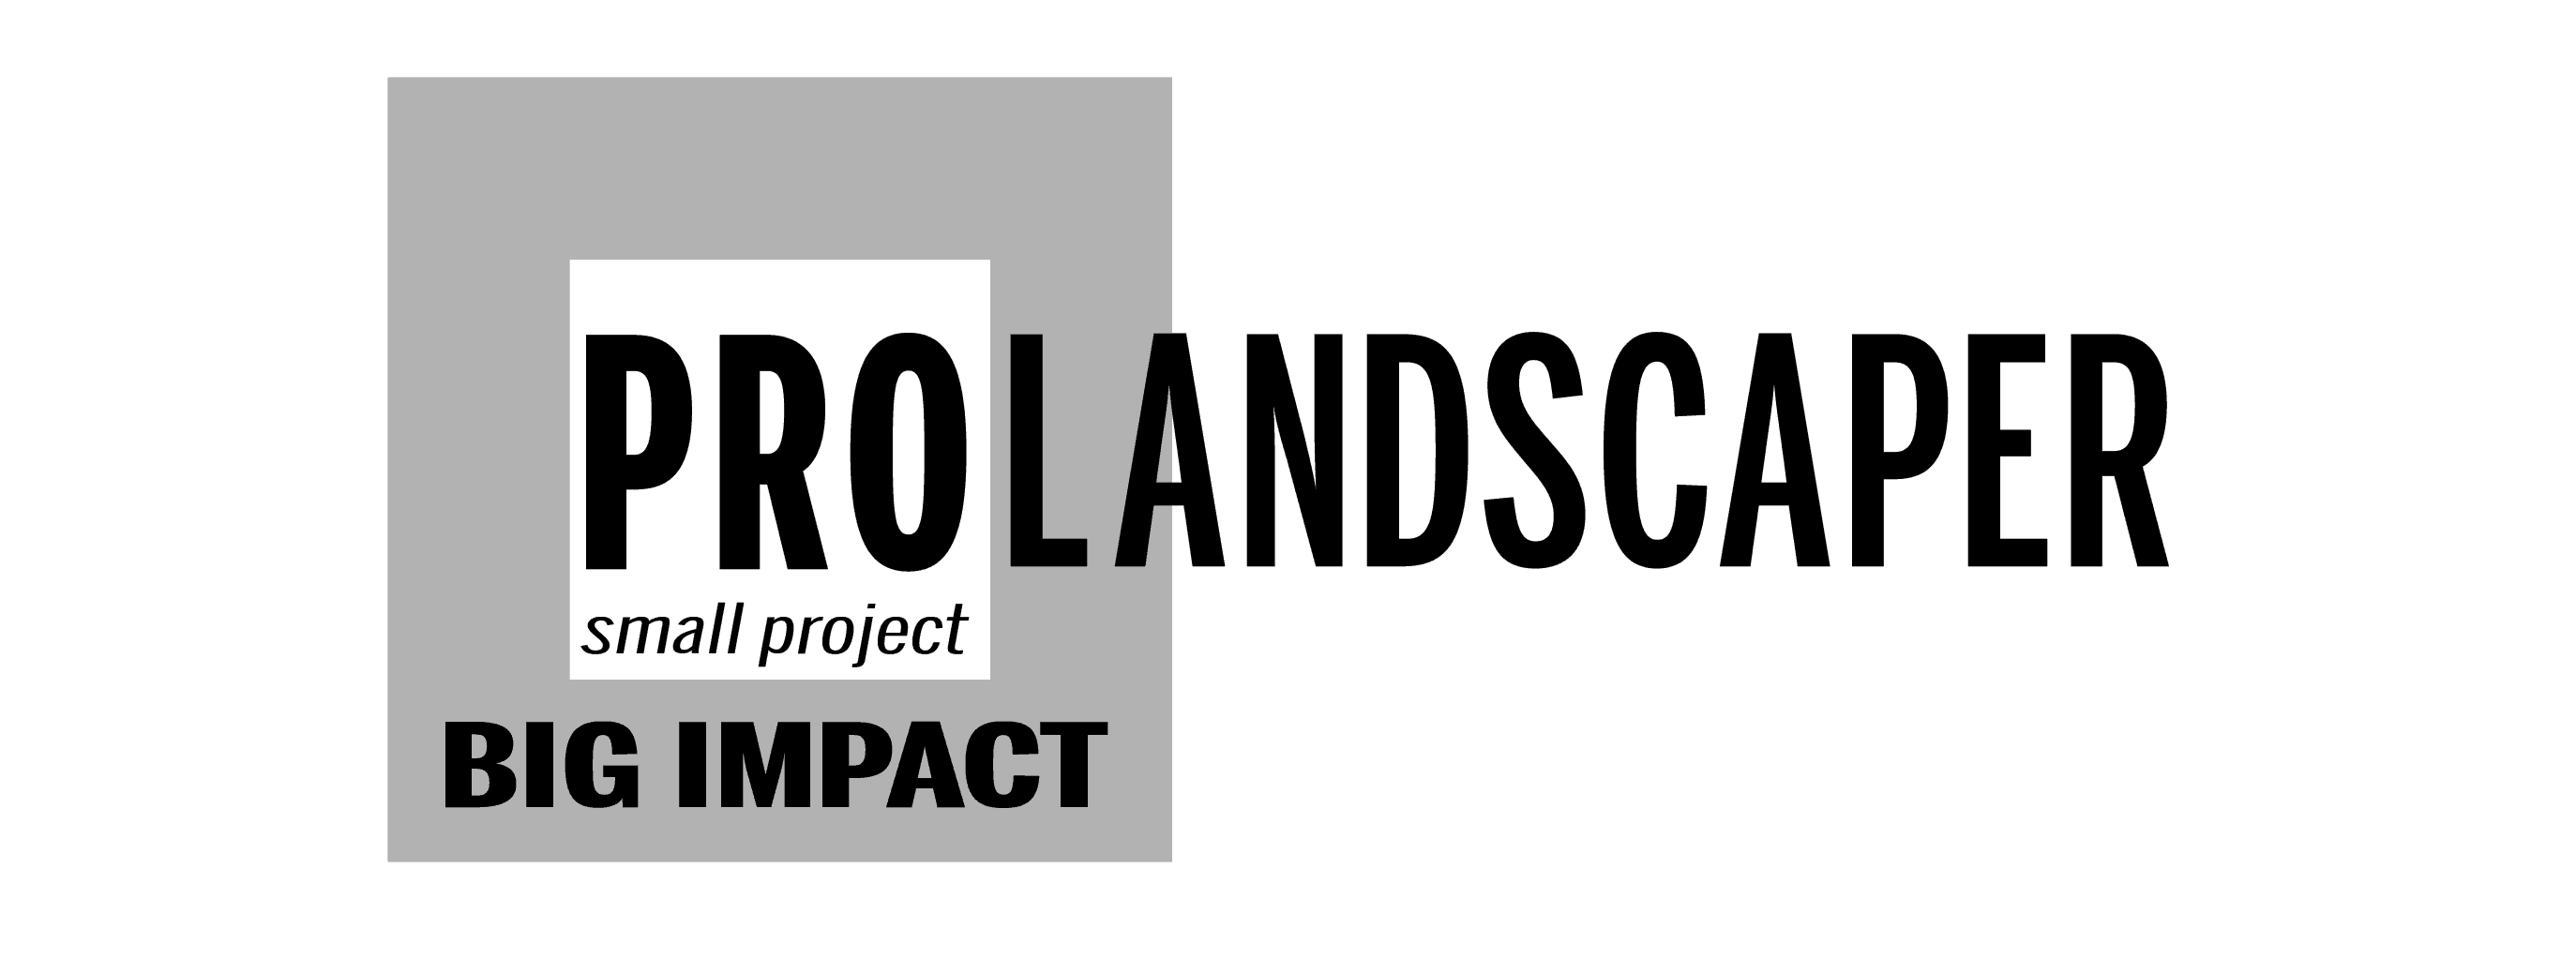 small project BIG IMPACT